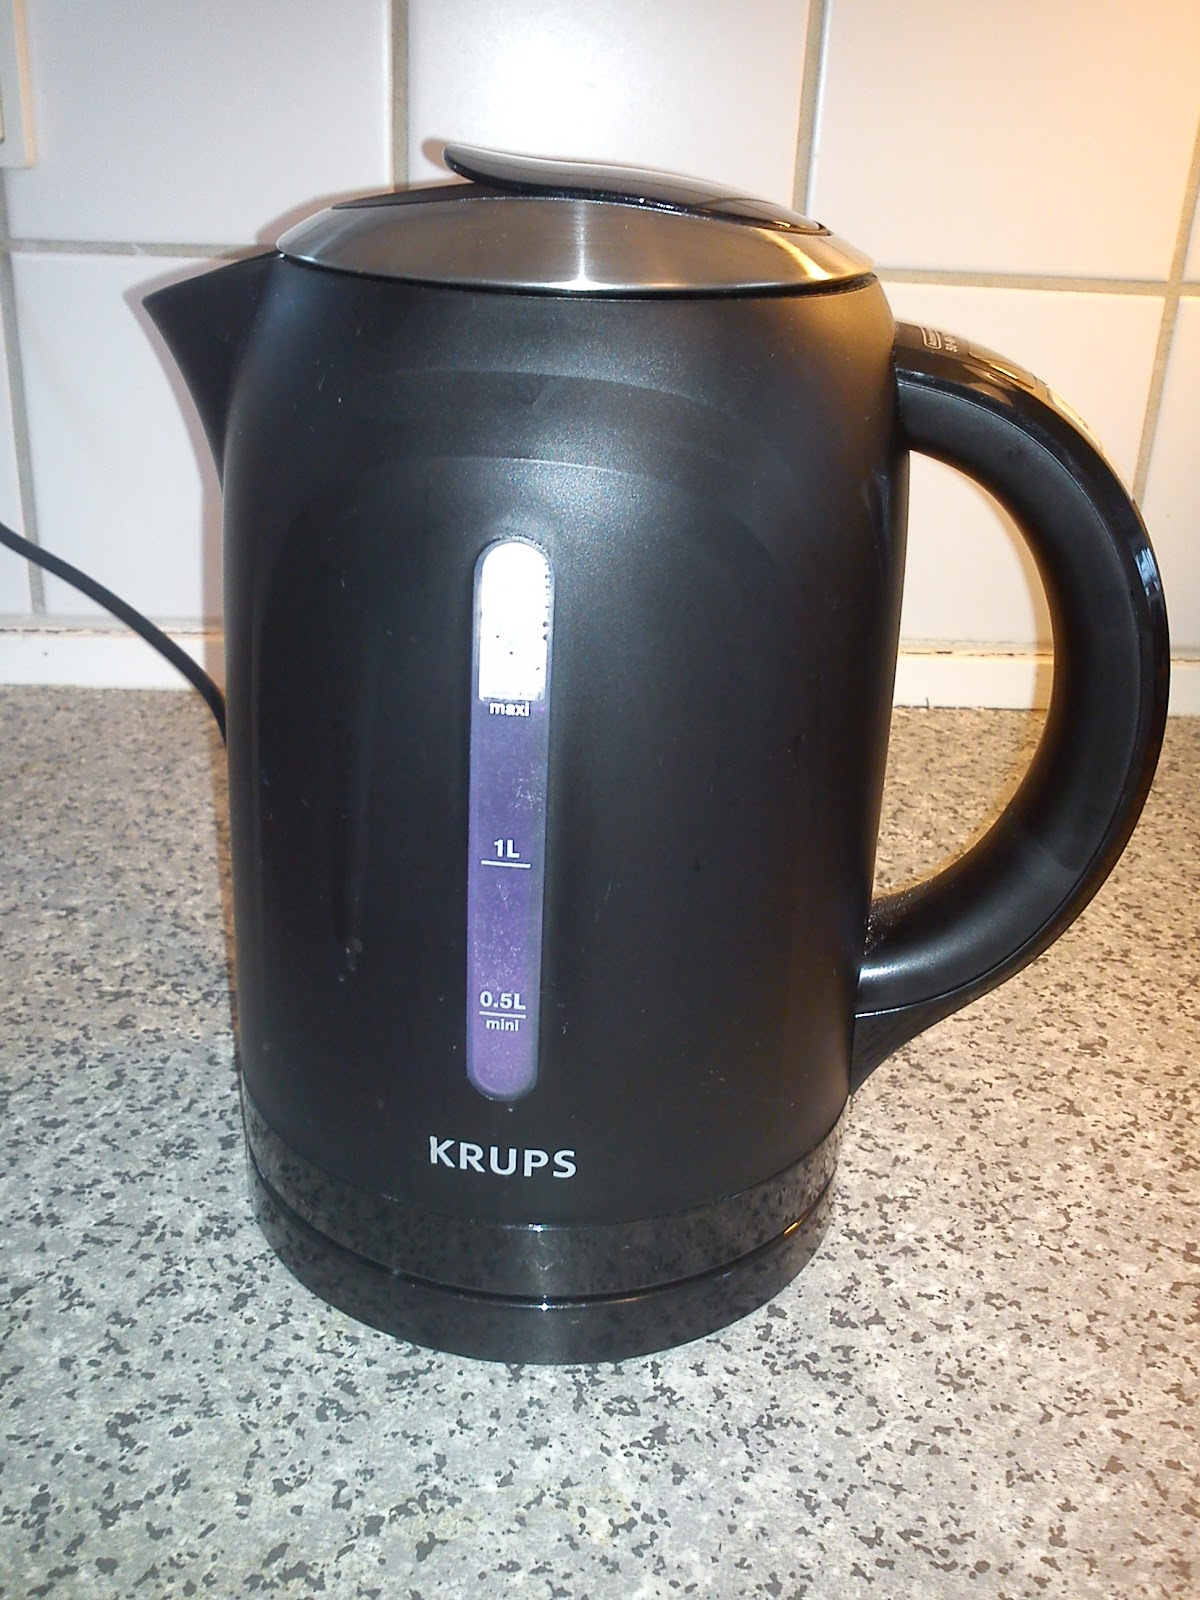 Kitchen of Kiki: Kitchen equipment 13 - electrical kettle